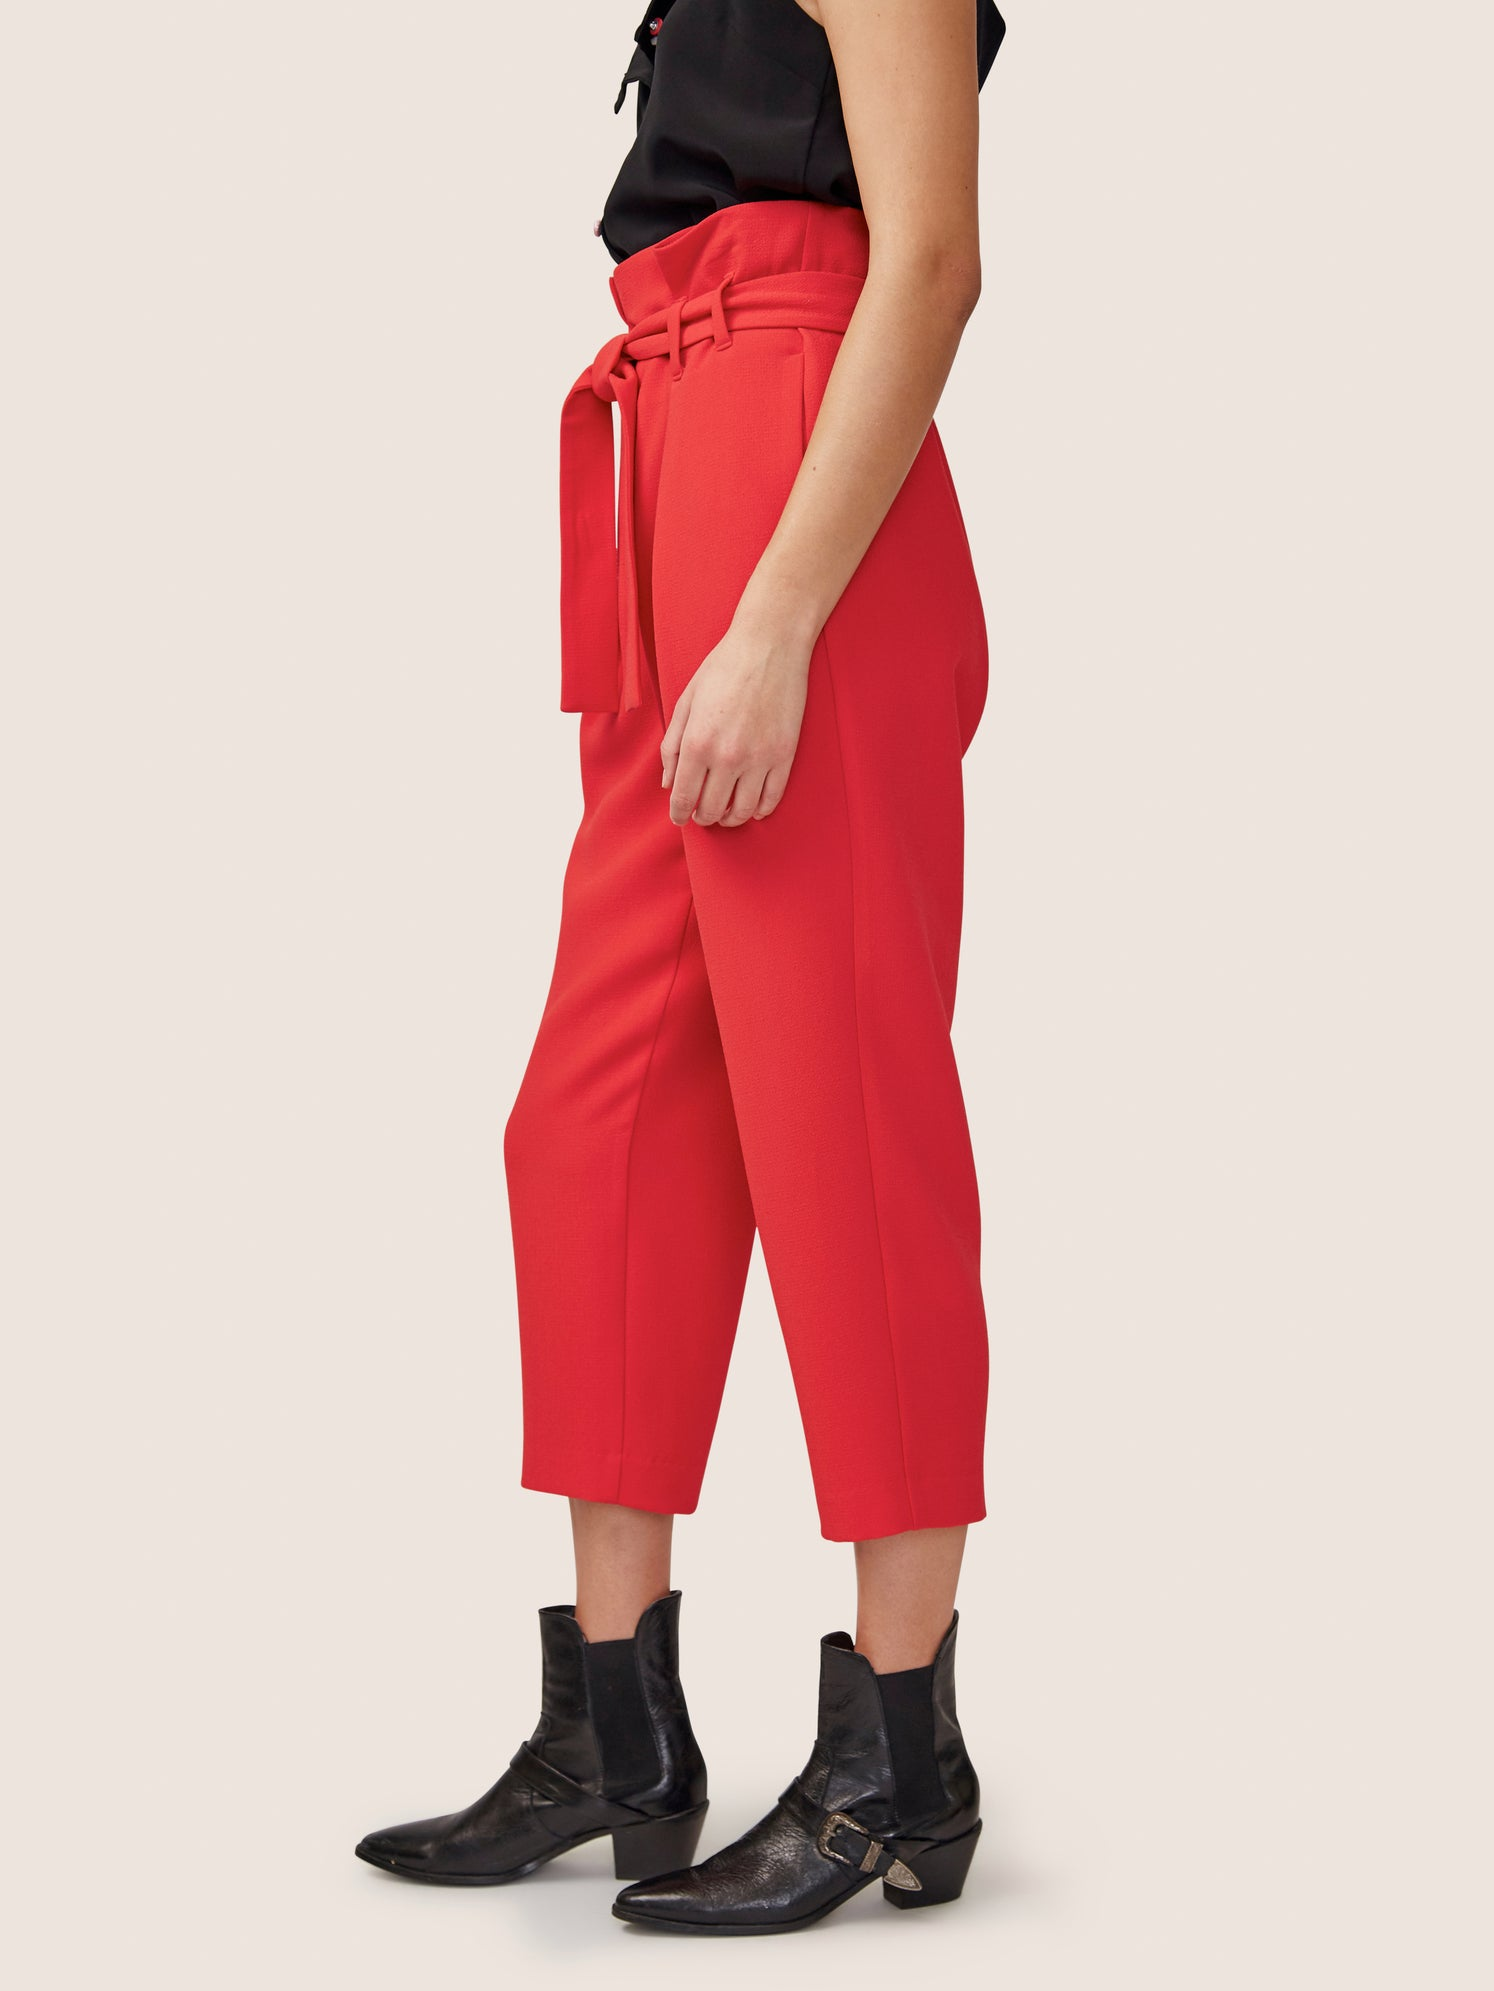 Flame red cropped paper bag pant with front tie